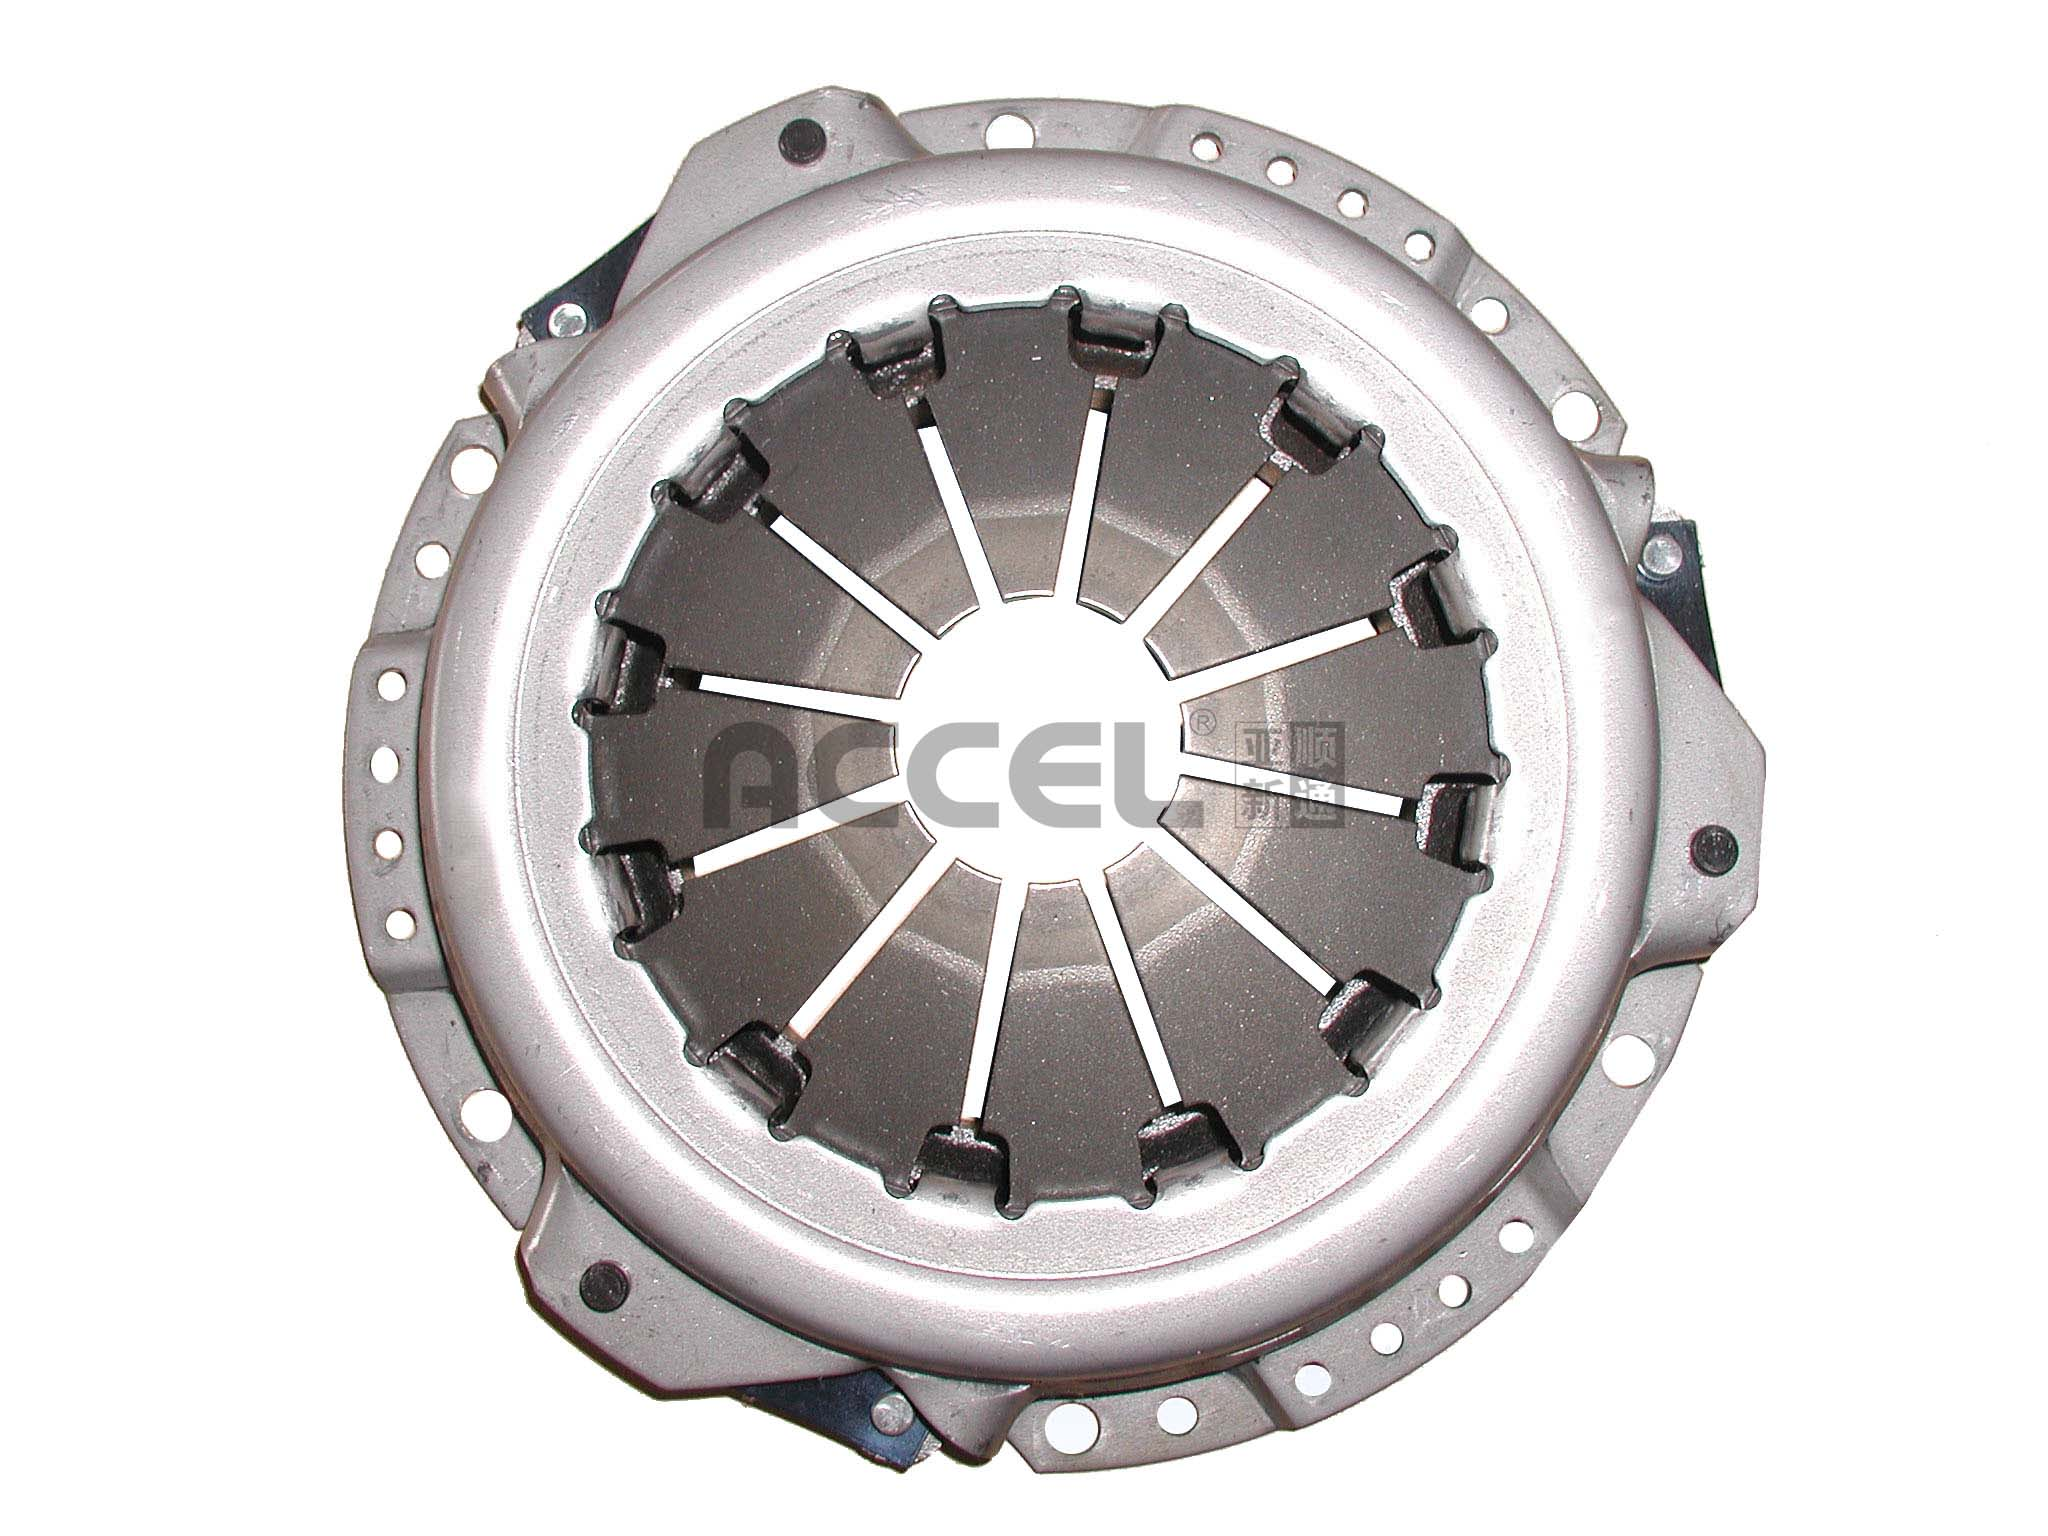 Clutch Cover/OE:SCH0233/200*130*230/CHC-004/HONDA/LY292